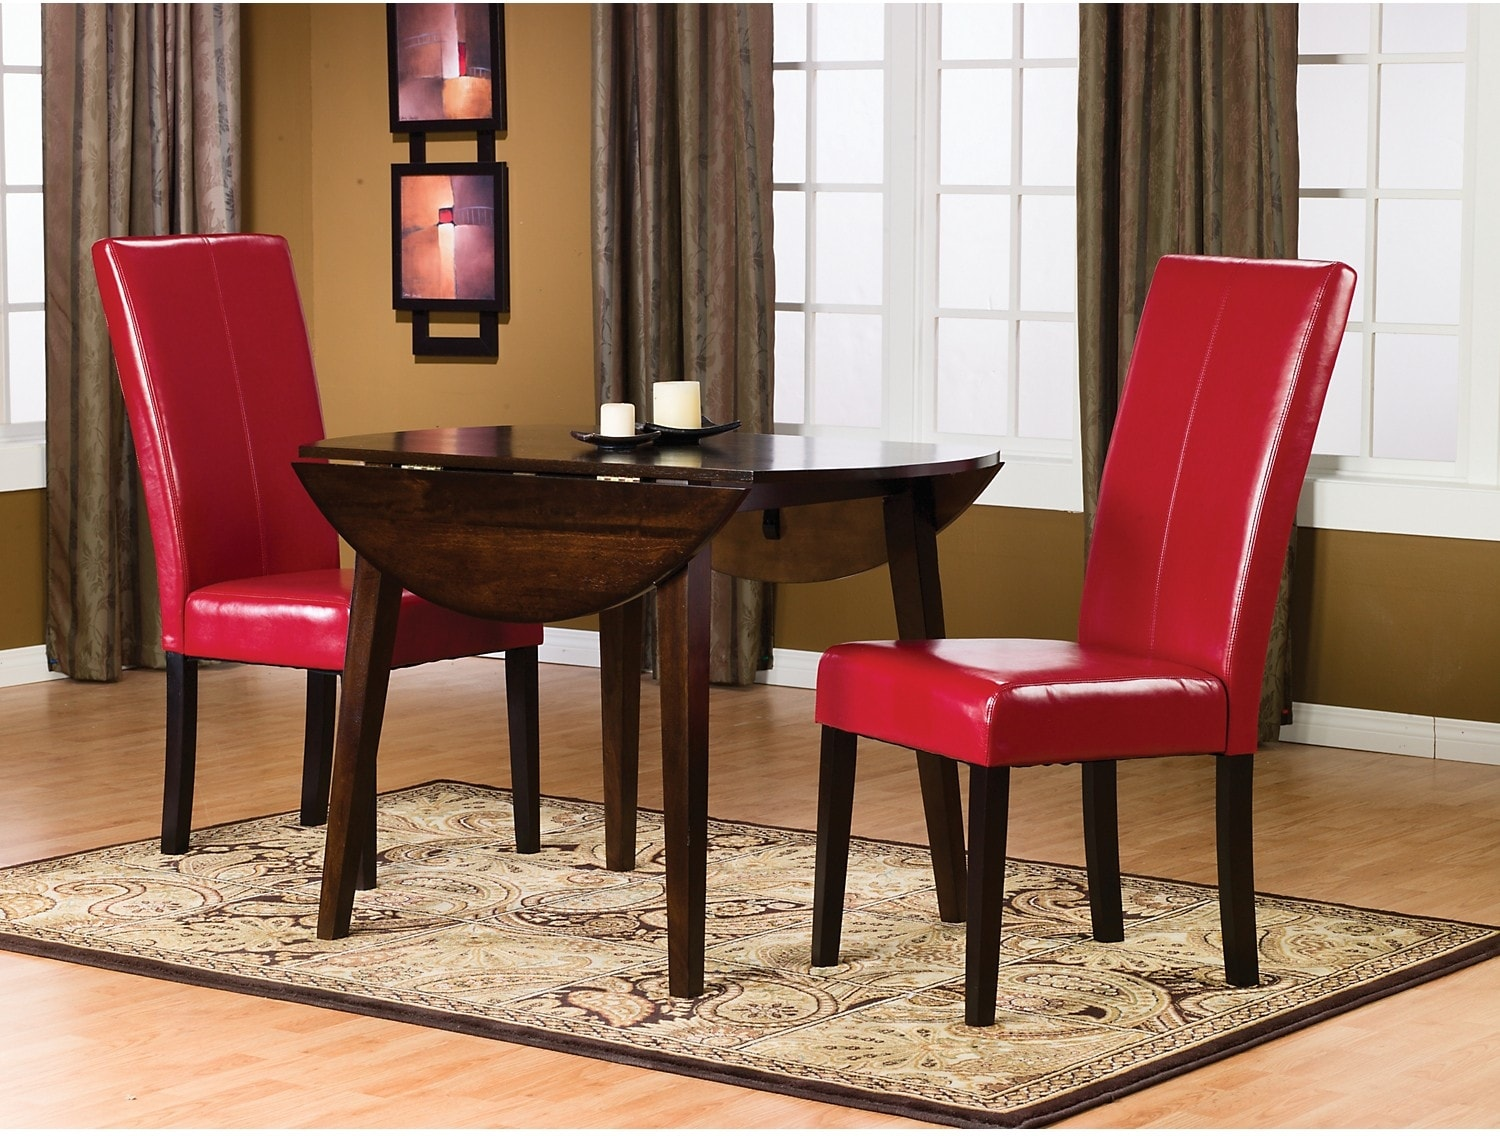 Dakota 3 Piece Round Table Dining Package w Red Chairs The Brick